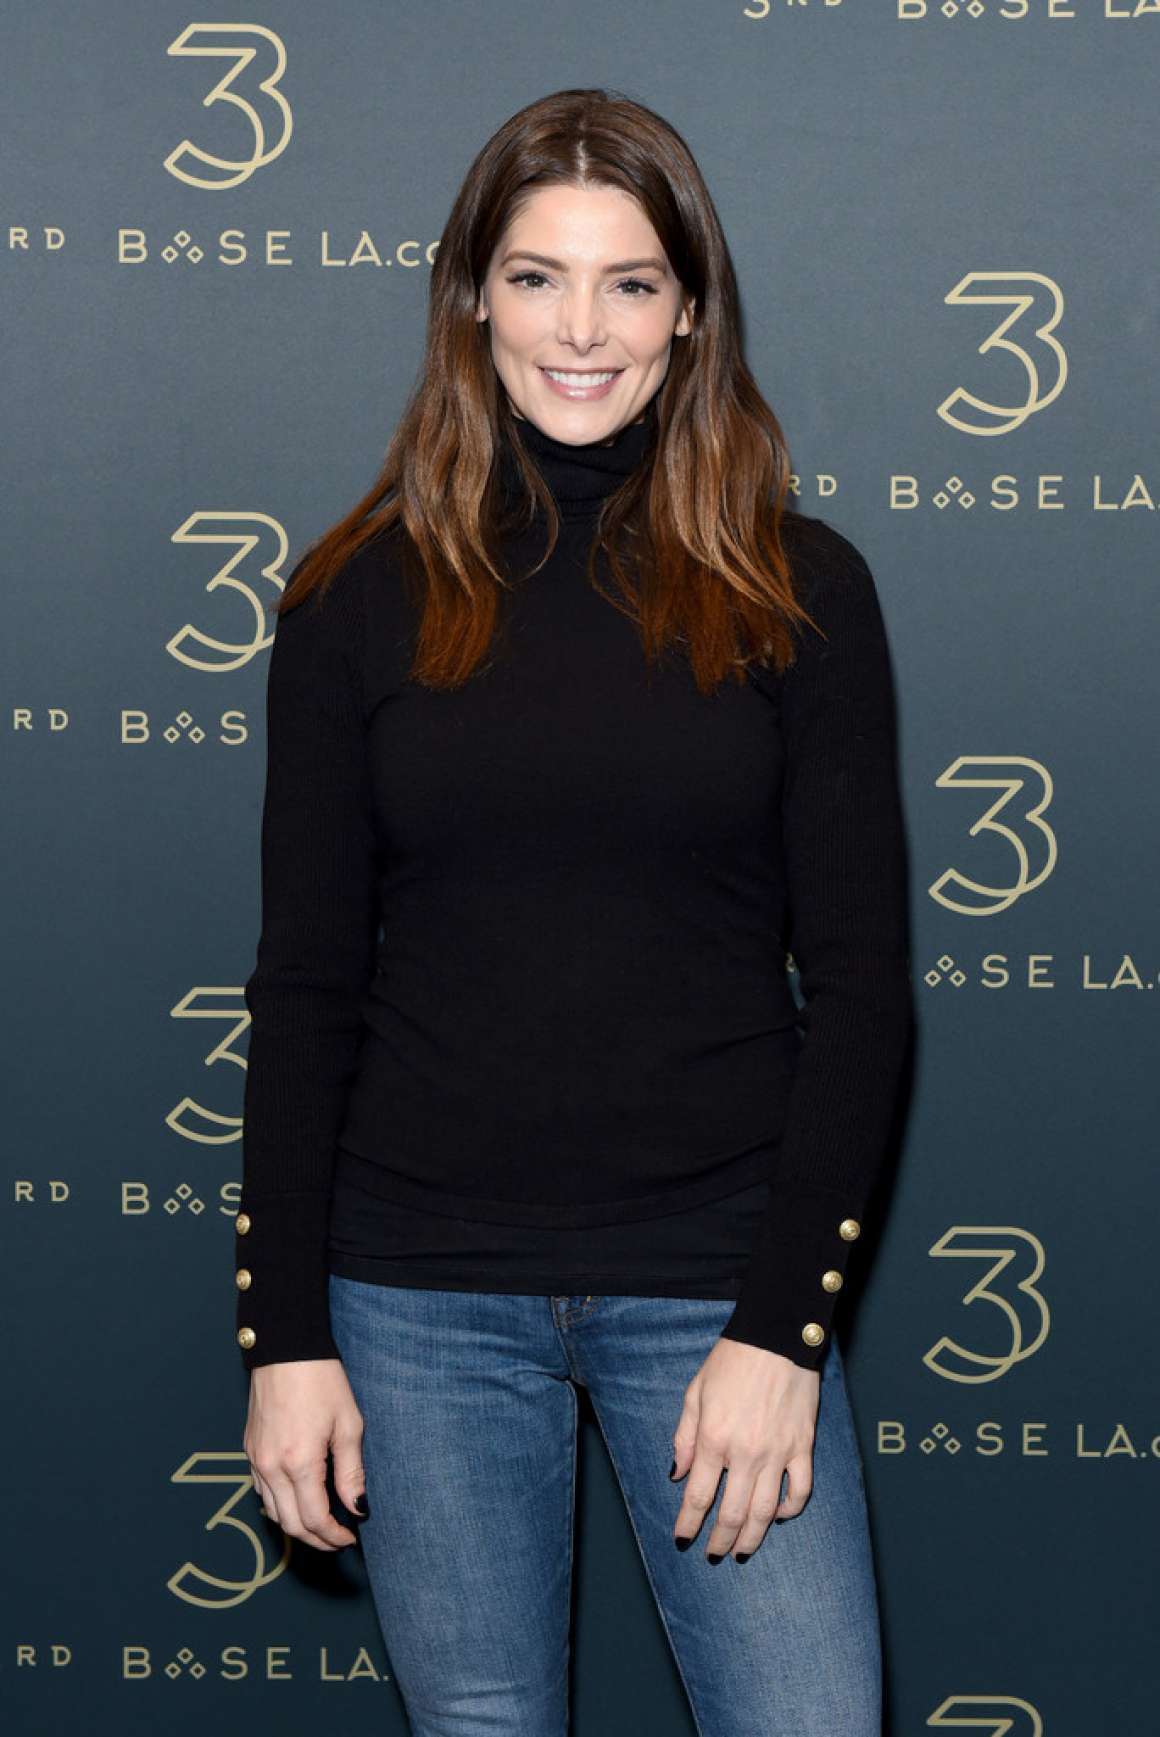 Ashley Greene - Upscale Sports Lounge 3rd Base Grand Opening in Los Angeles